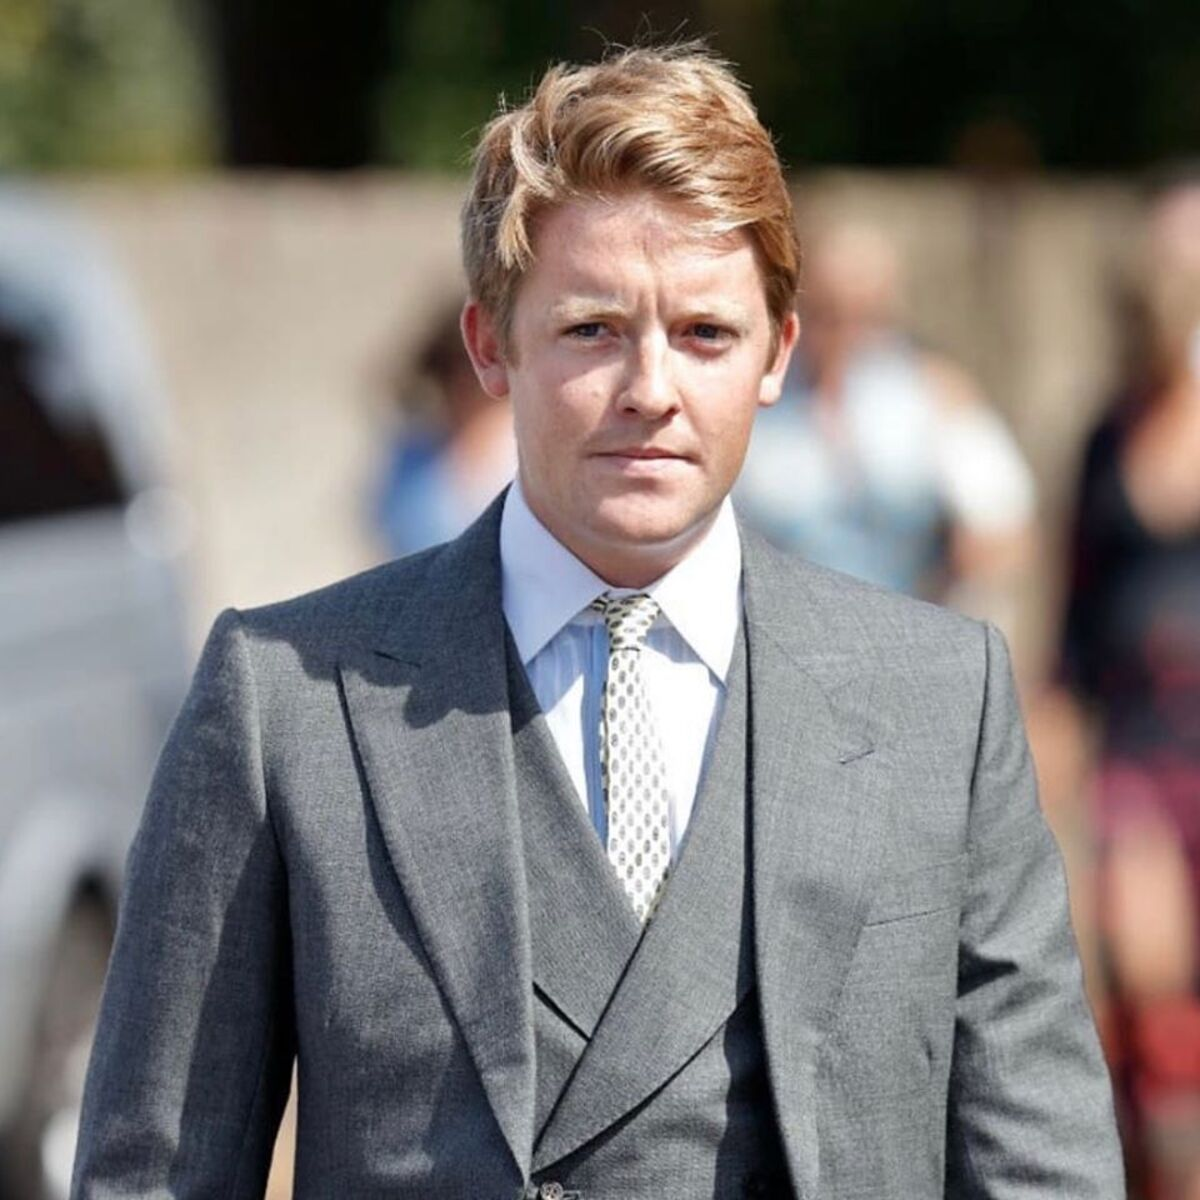 Chi è hugh grosvenor?